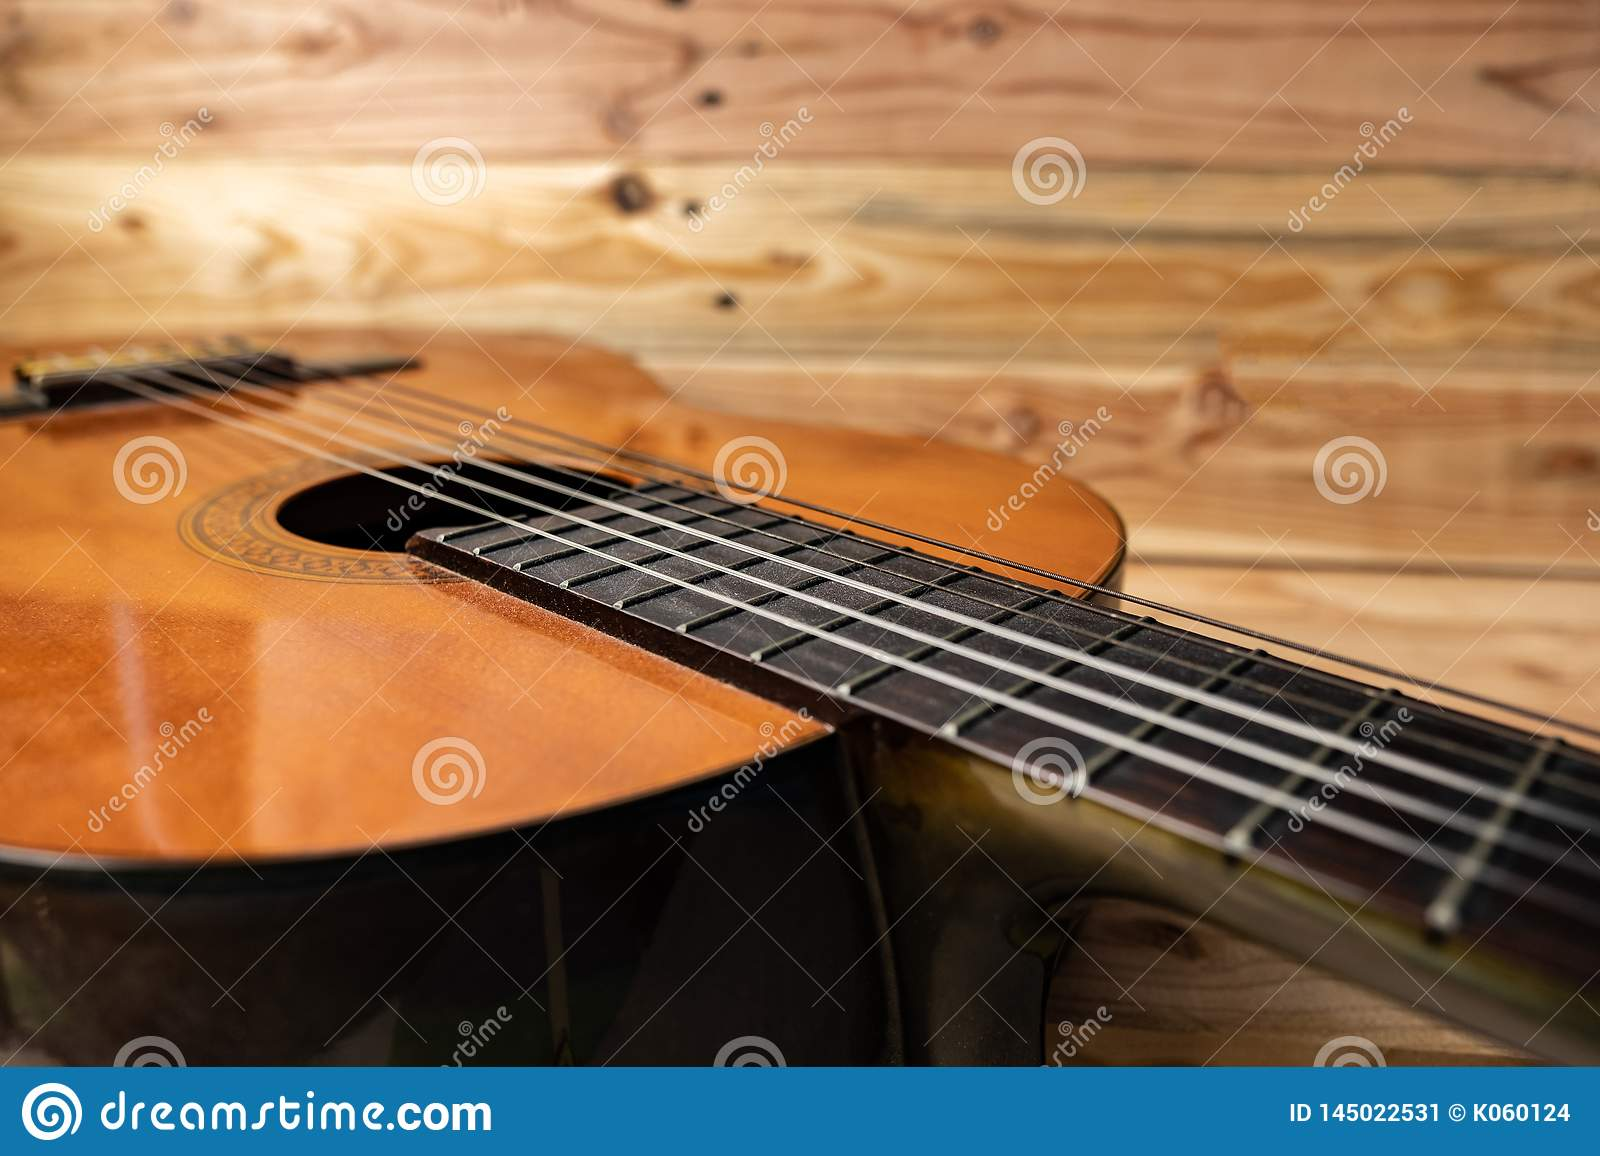 Old classical guitar on wooden background